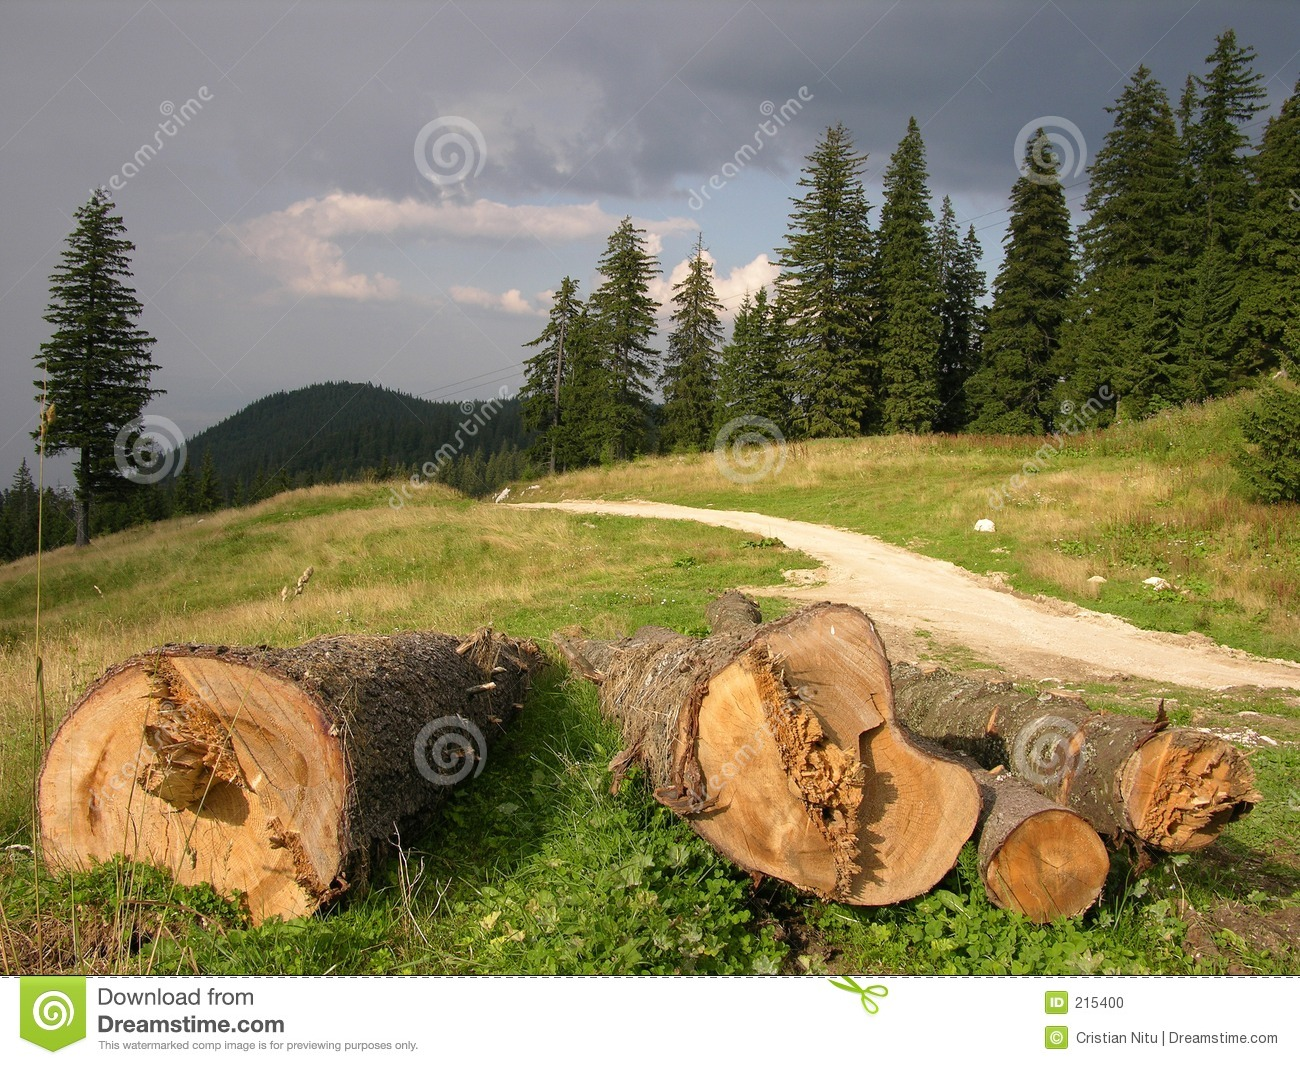 save forest European commission - joint research centre - forest resources and climate  unit.